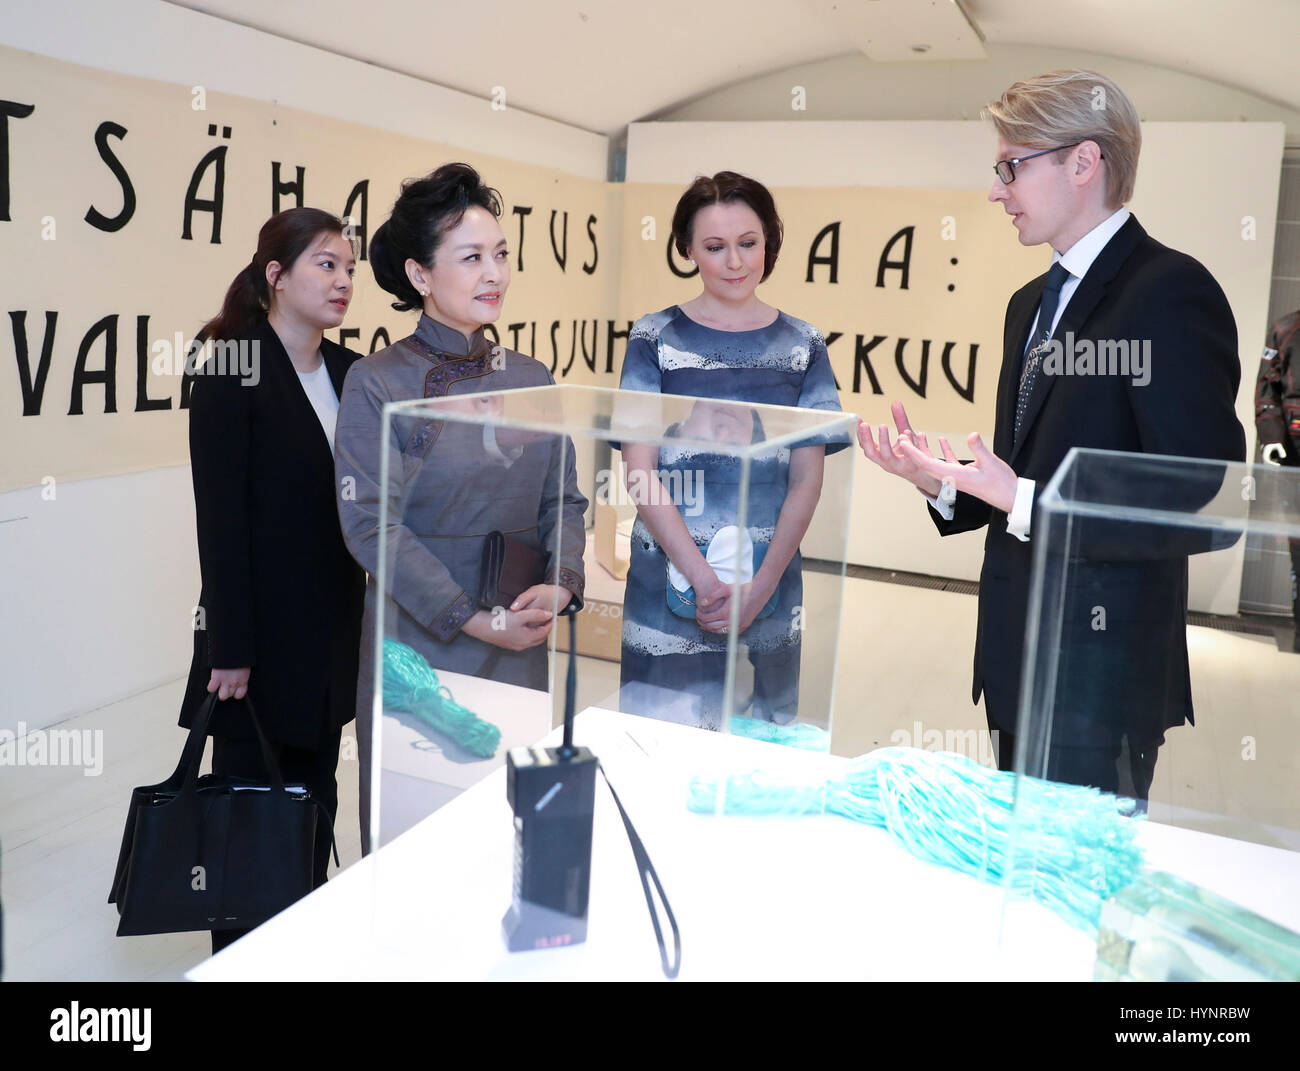 Helsinki, Finland. 5th Apr, 2017. Peng Liyuan (2nd L), wife of Chinese President Xi Jinping, visits the Design Museum Stock Photo